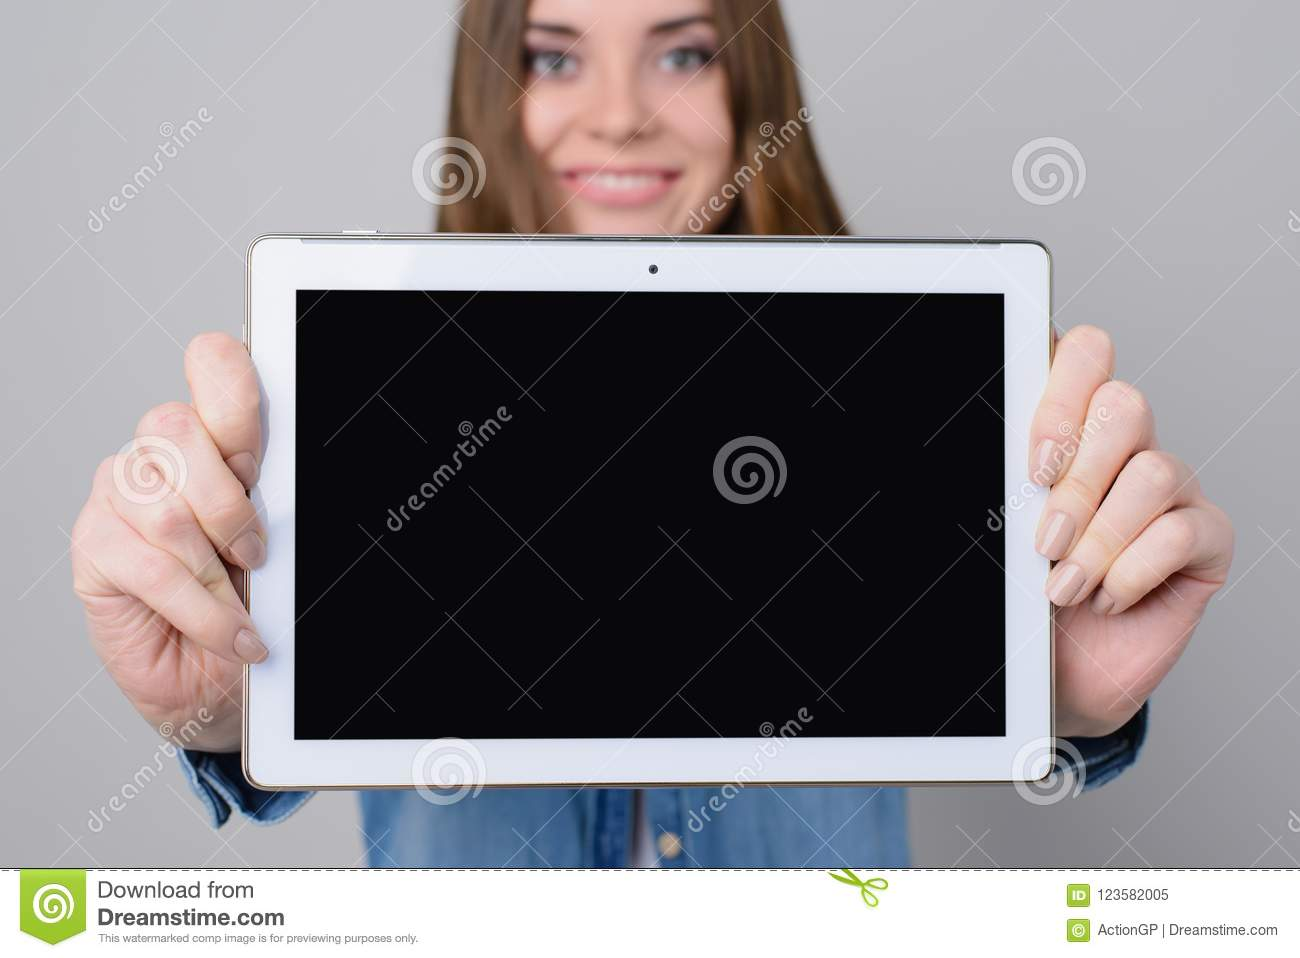 Woman with beautiful face, toothy smile is showing digital tablet with empty black screen. Close up photo, isolated on grey backgr